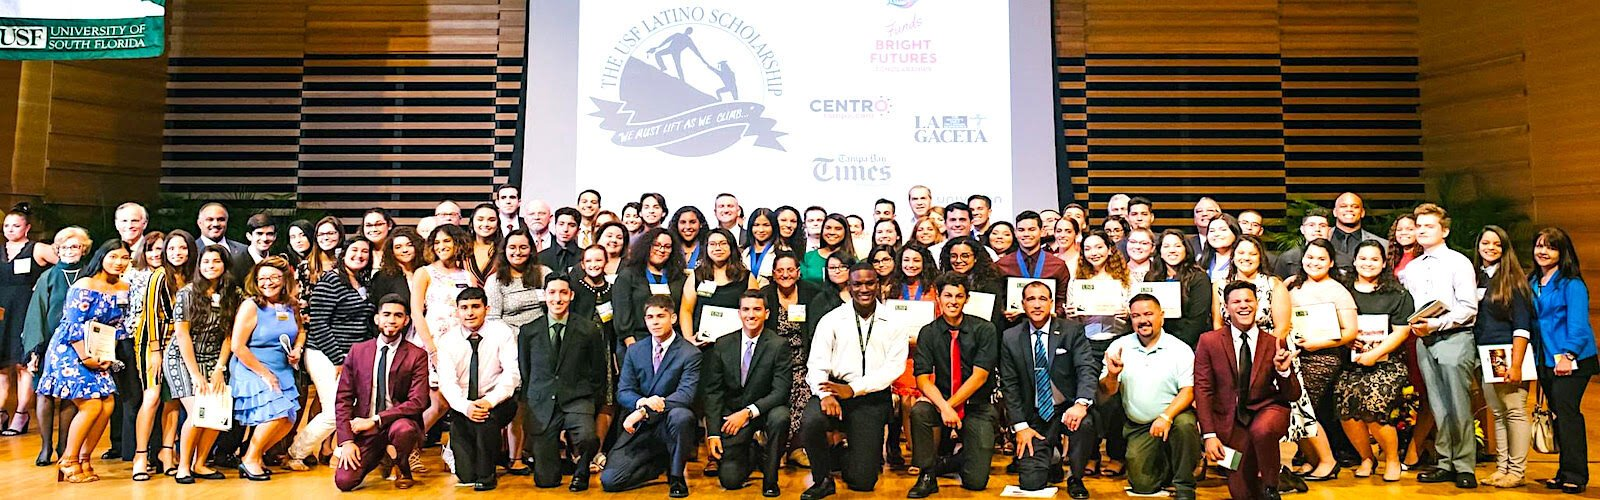 There are 147 students in the USF Latino Scholarship Program.